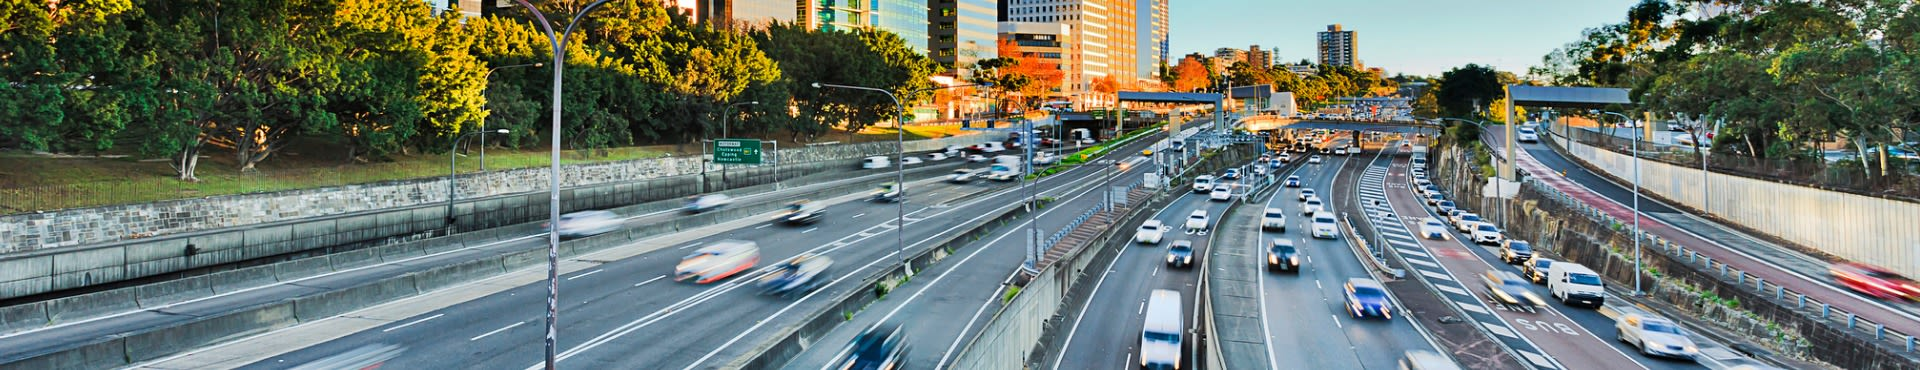 Shine Lawyers | ctp-claims-process-motor-vehicle-traffic-in-australia